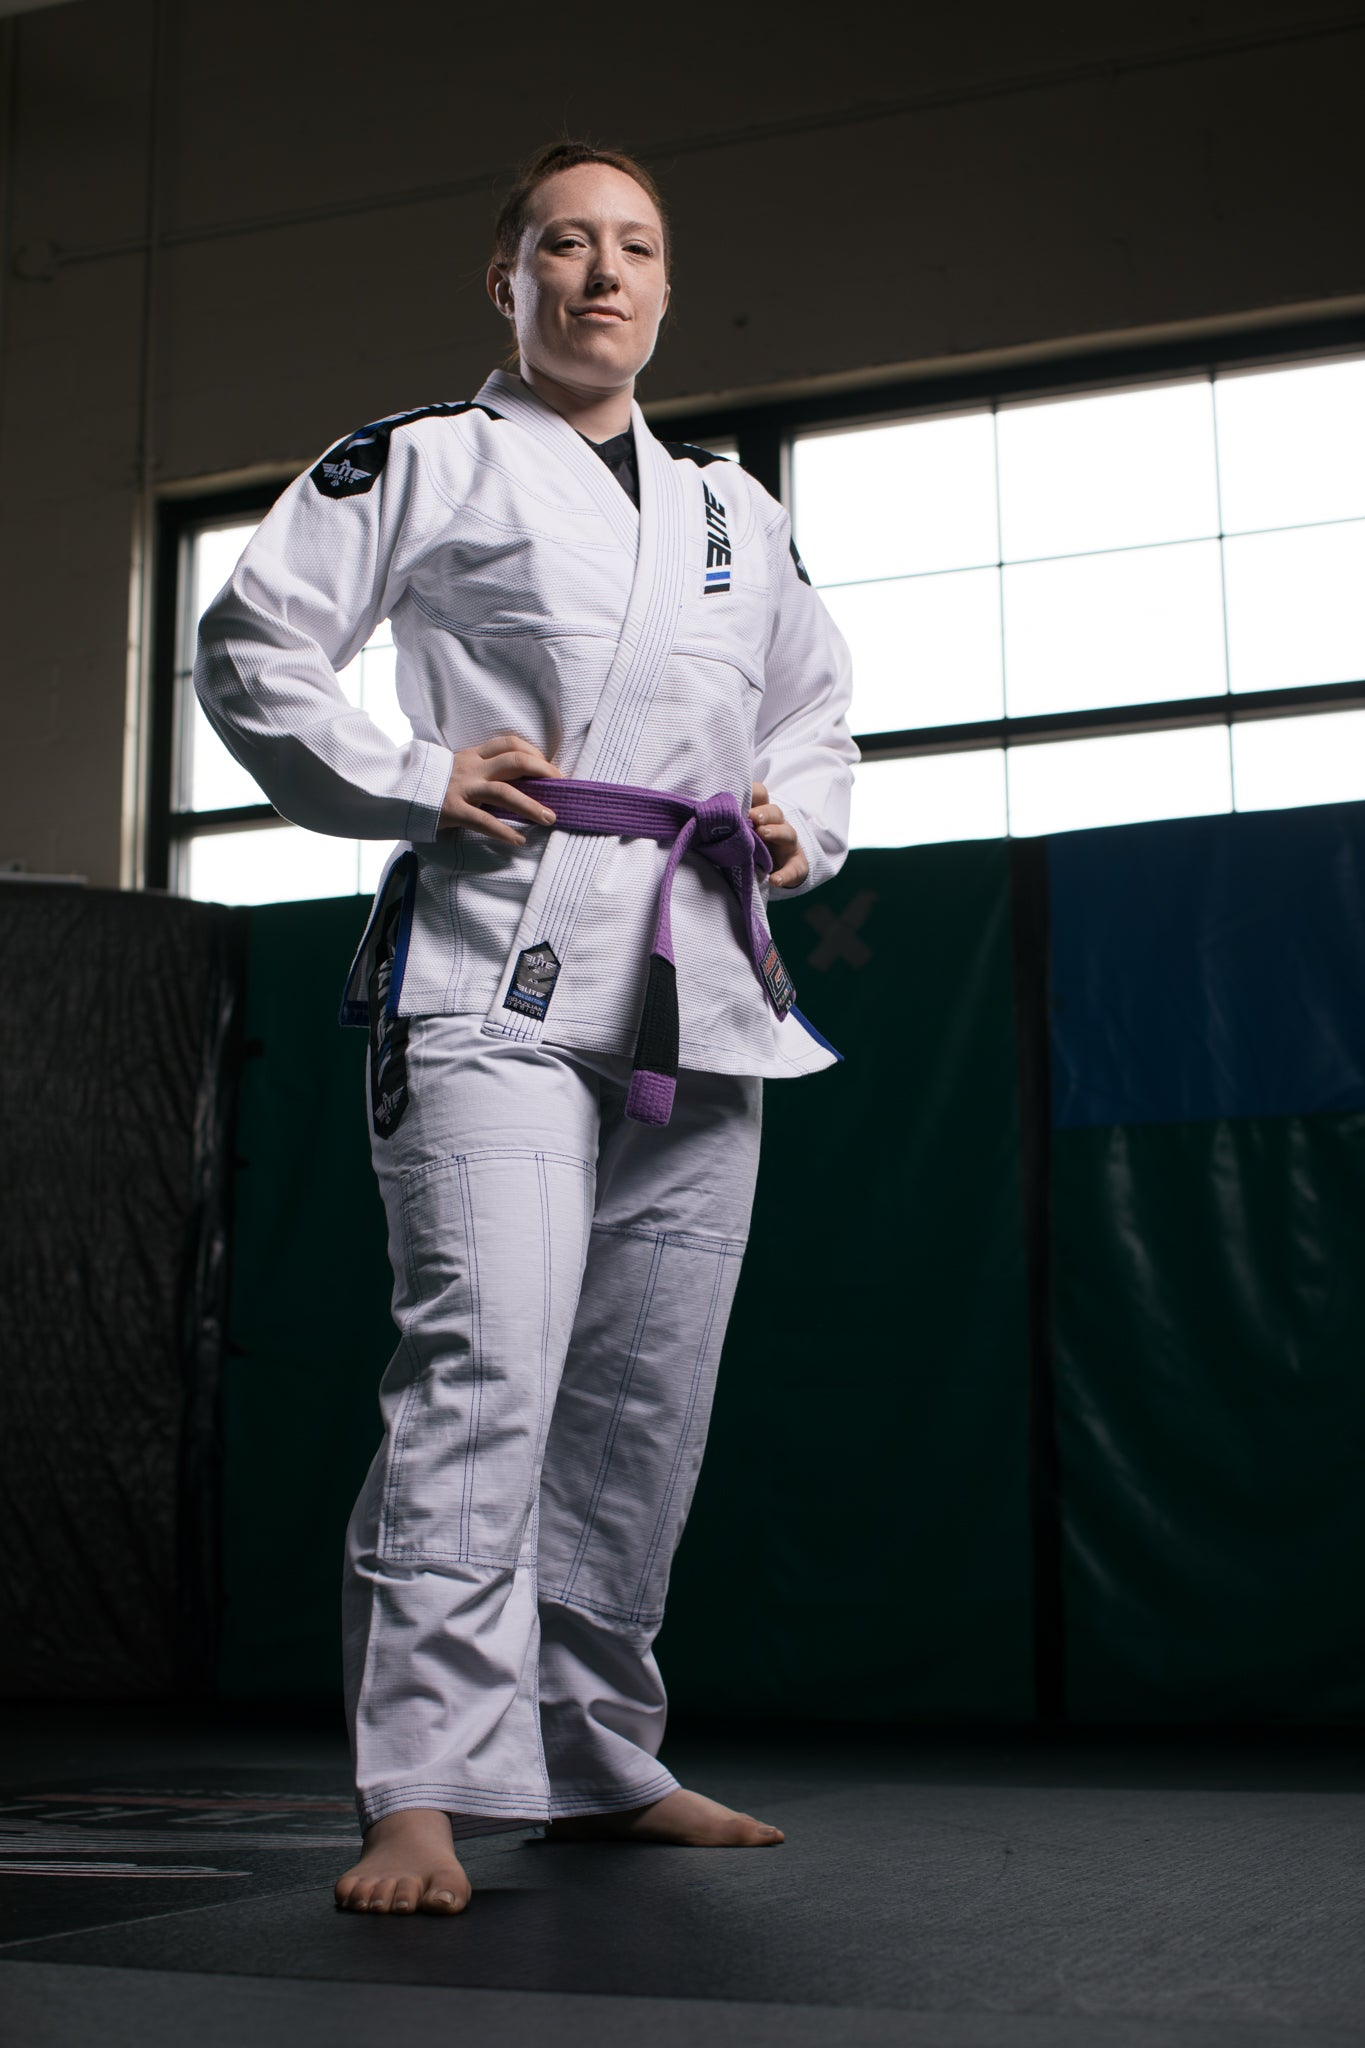 Elite Sports Team Elite Bjj Fighter Jessica Michelle Sunier Image4